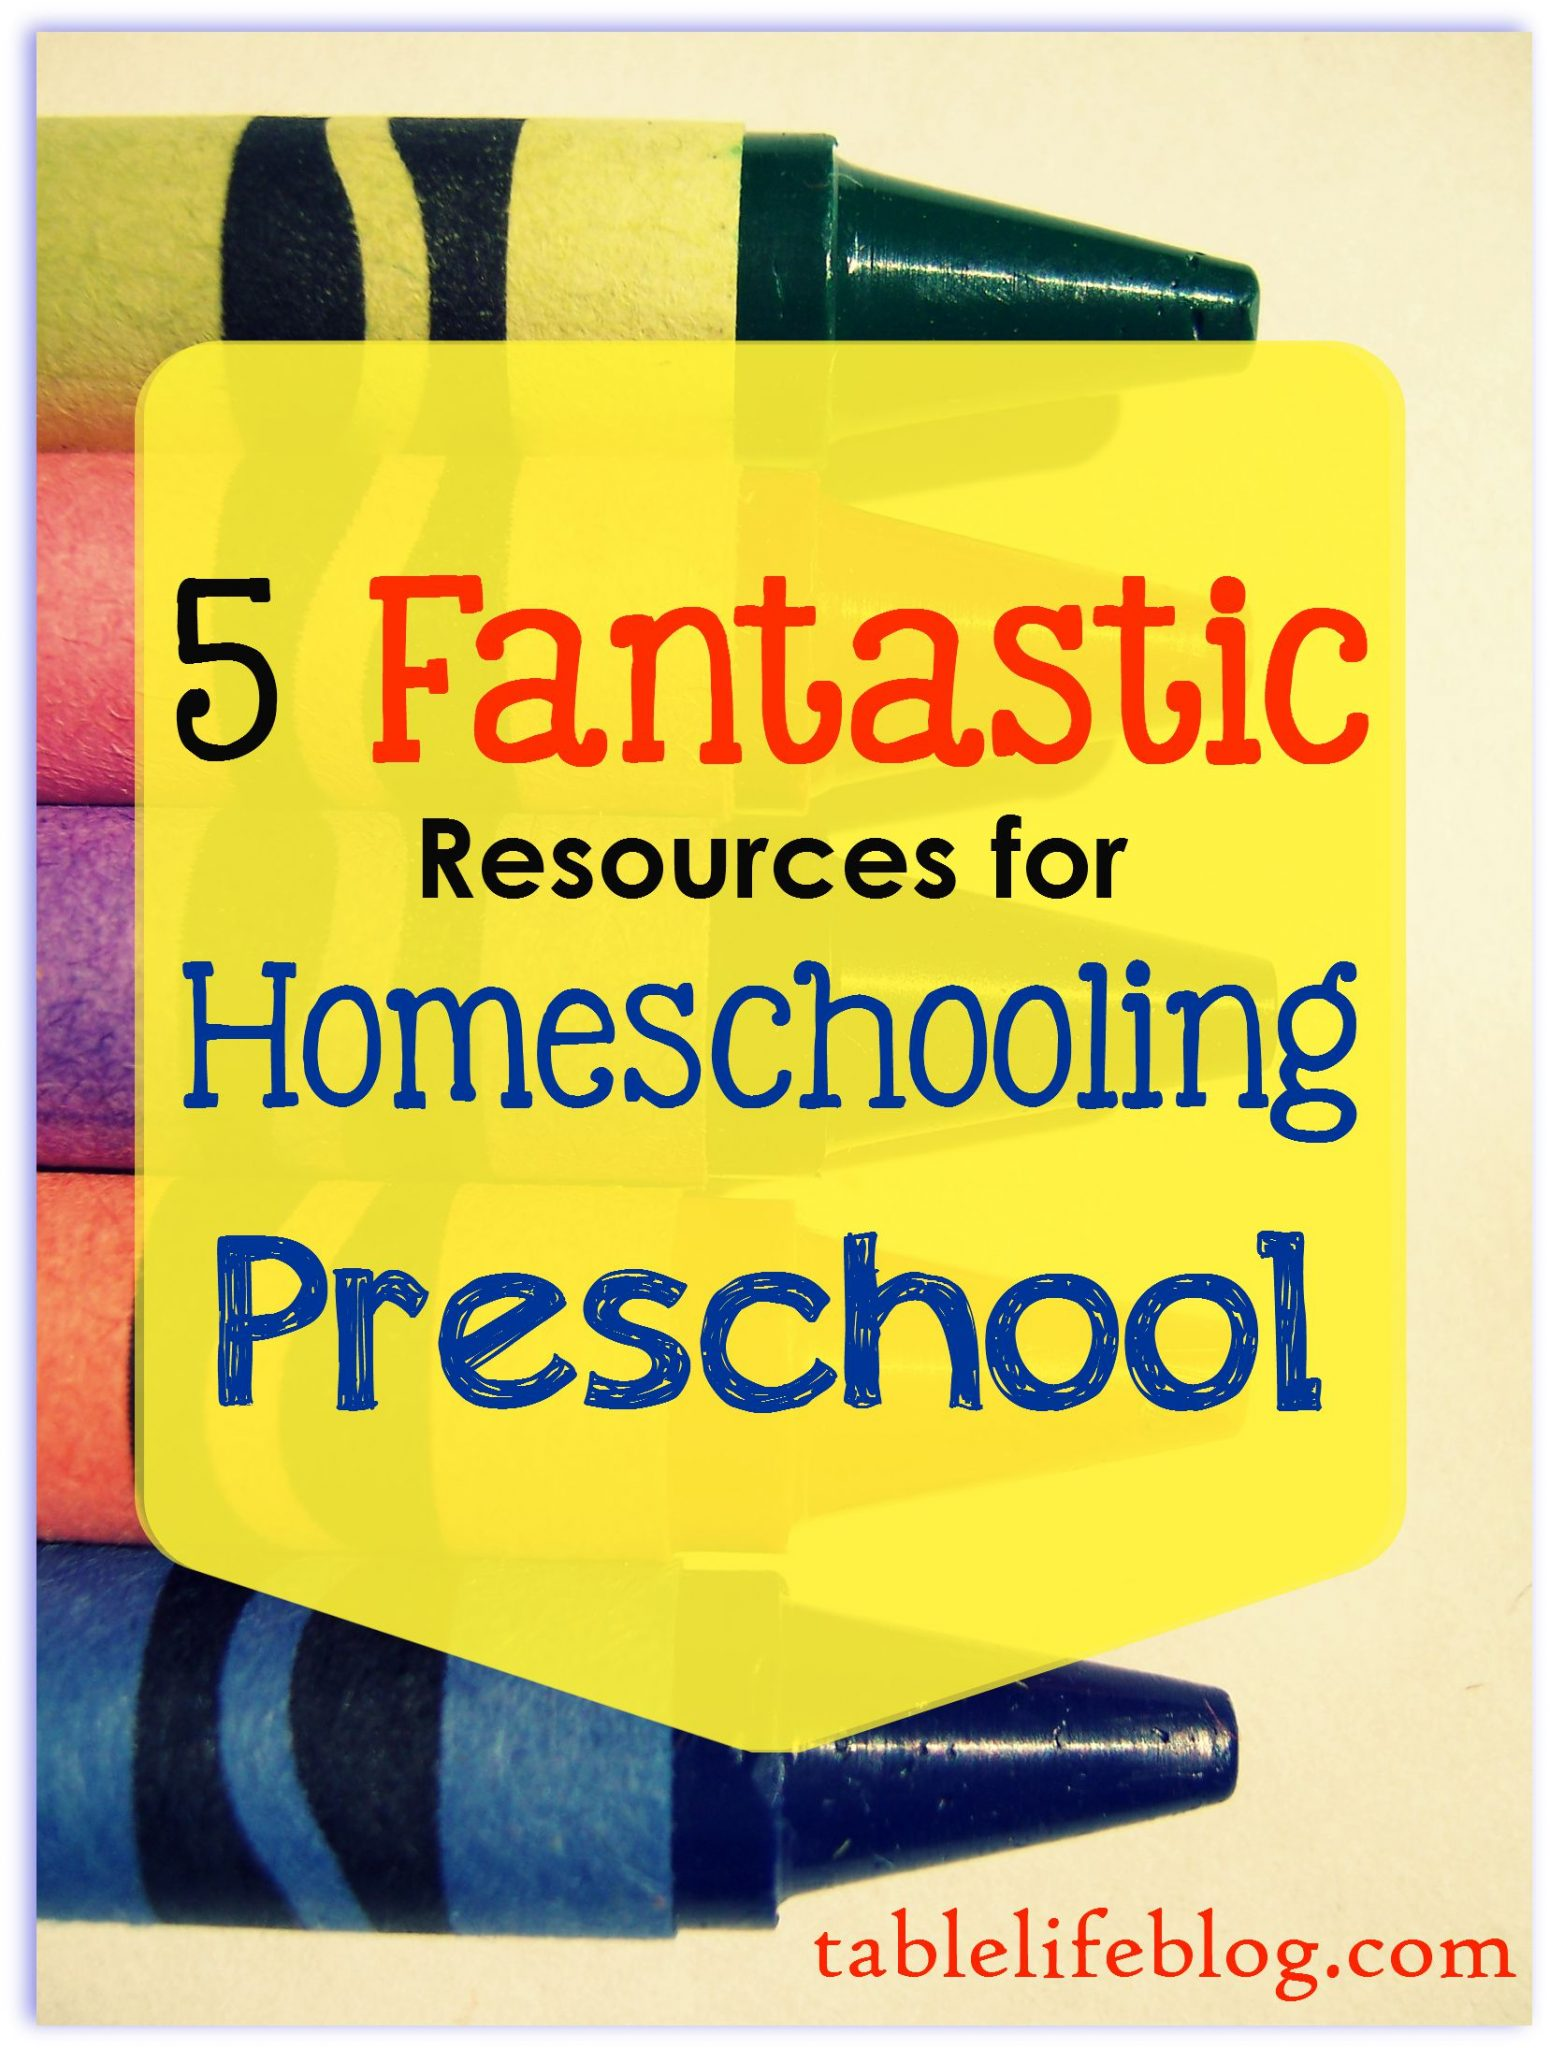 5 Fantastic Resources For Homeschooling Preschool